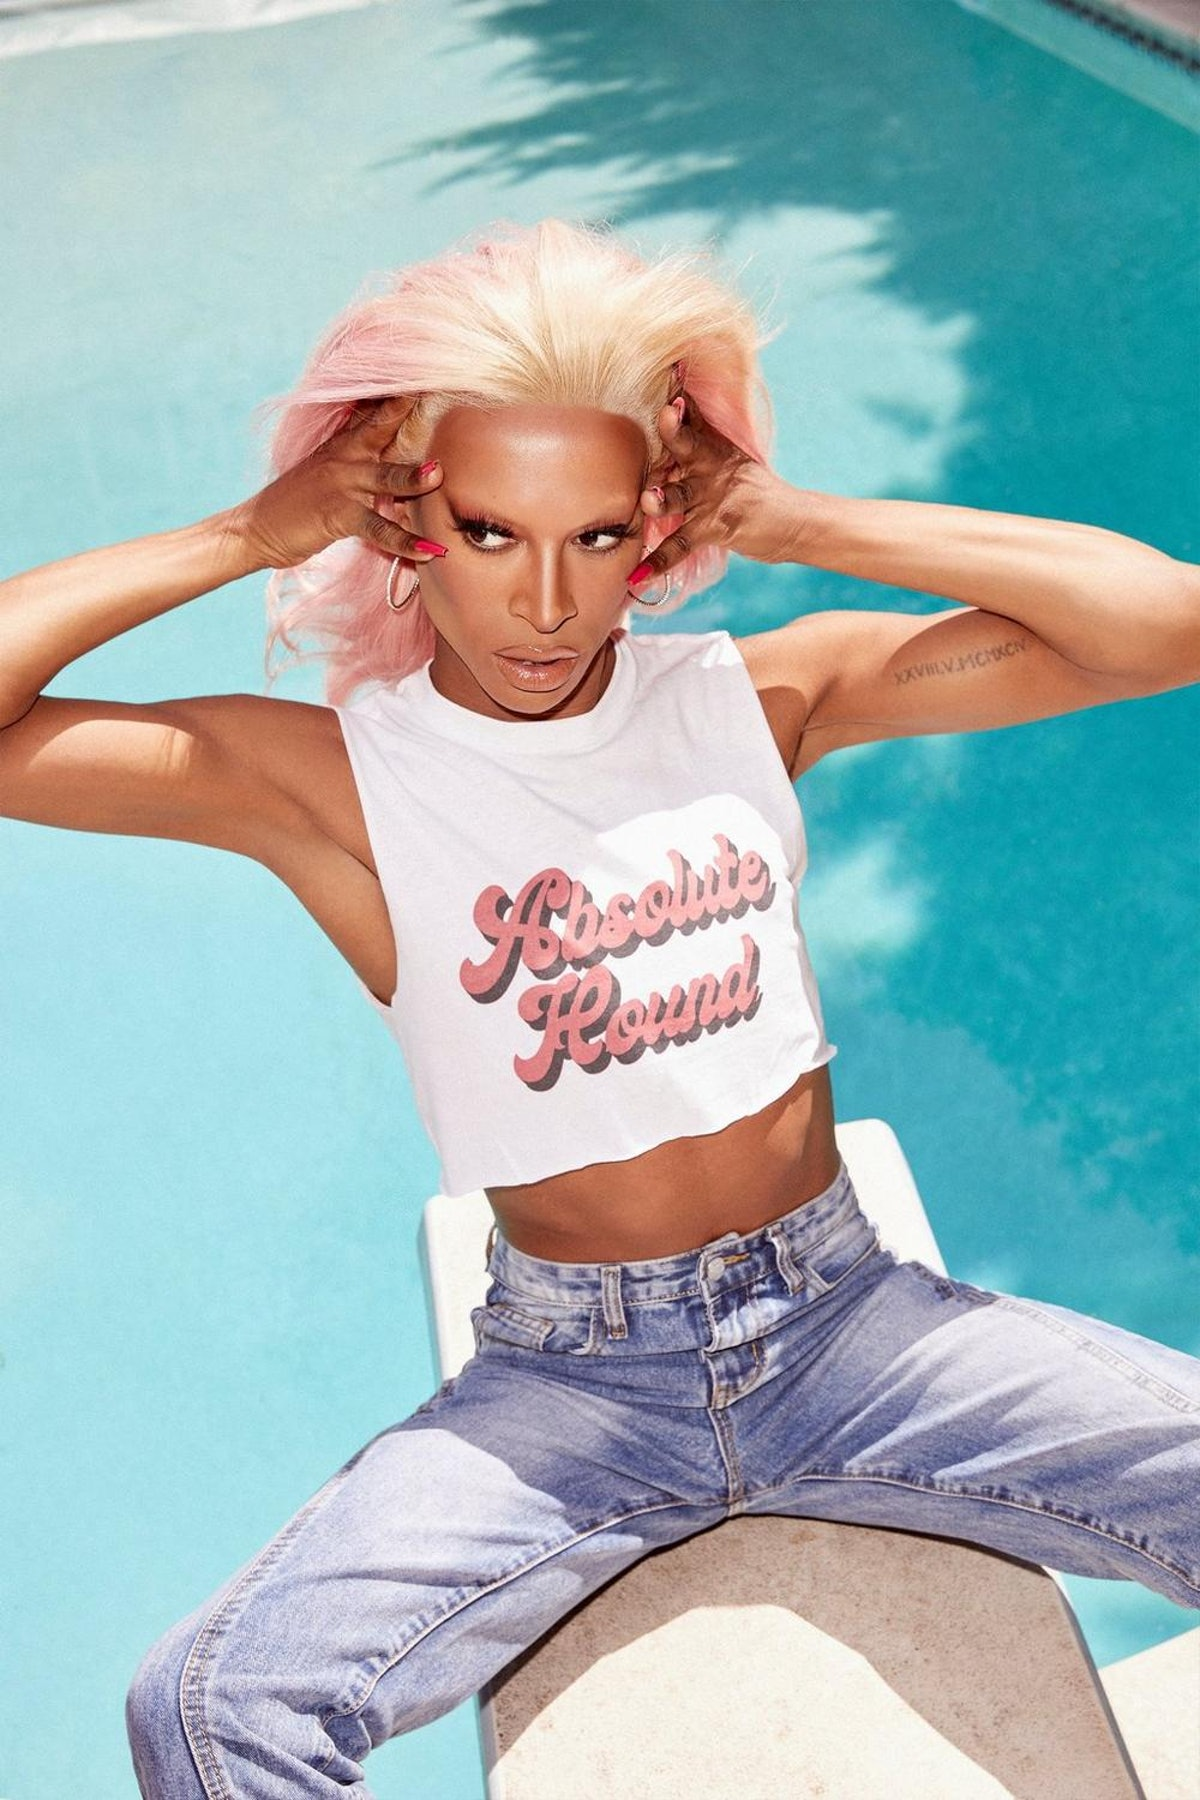 Nasty Gal x Tayce Absolute Hounds Graphic Crop Tank Top